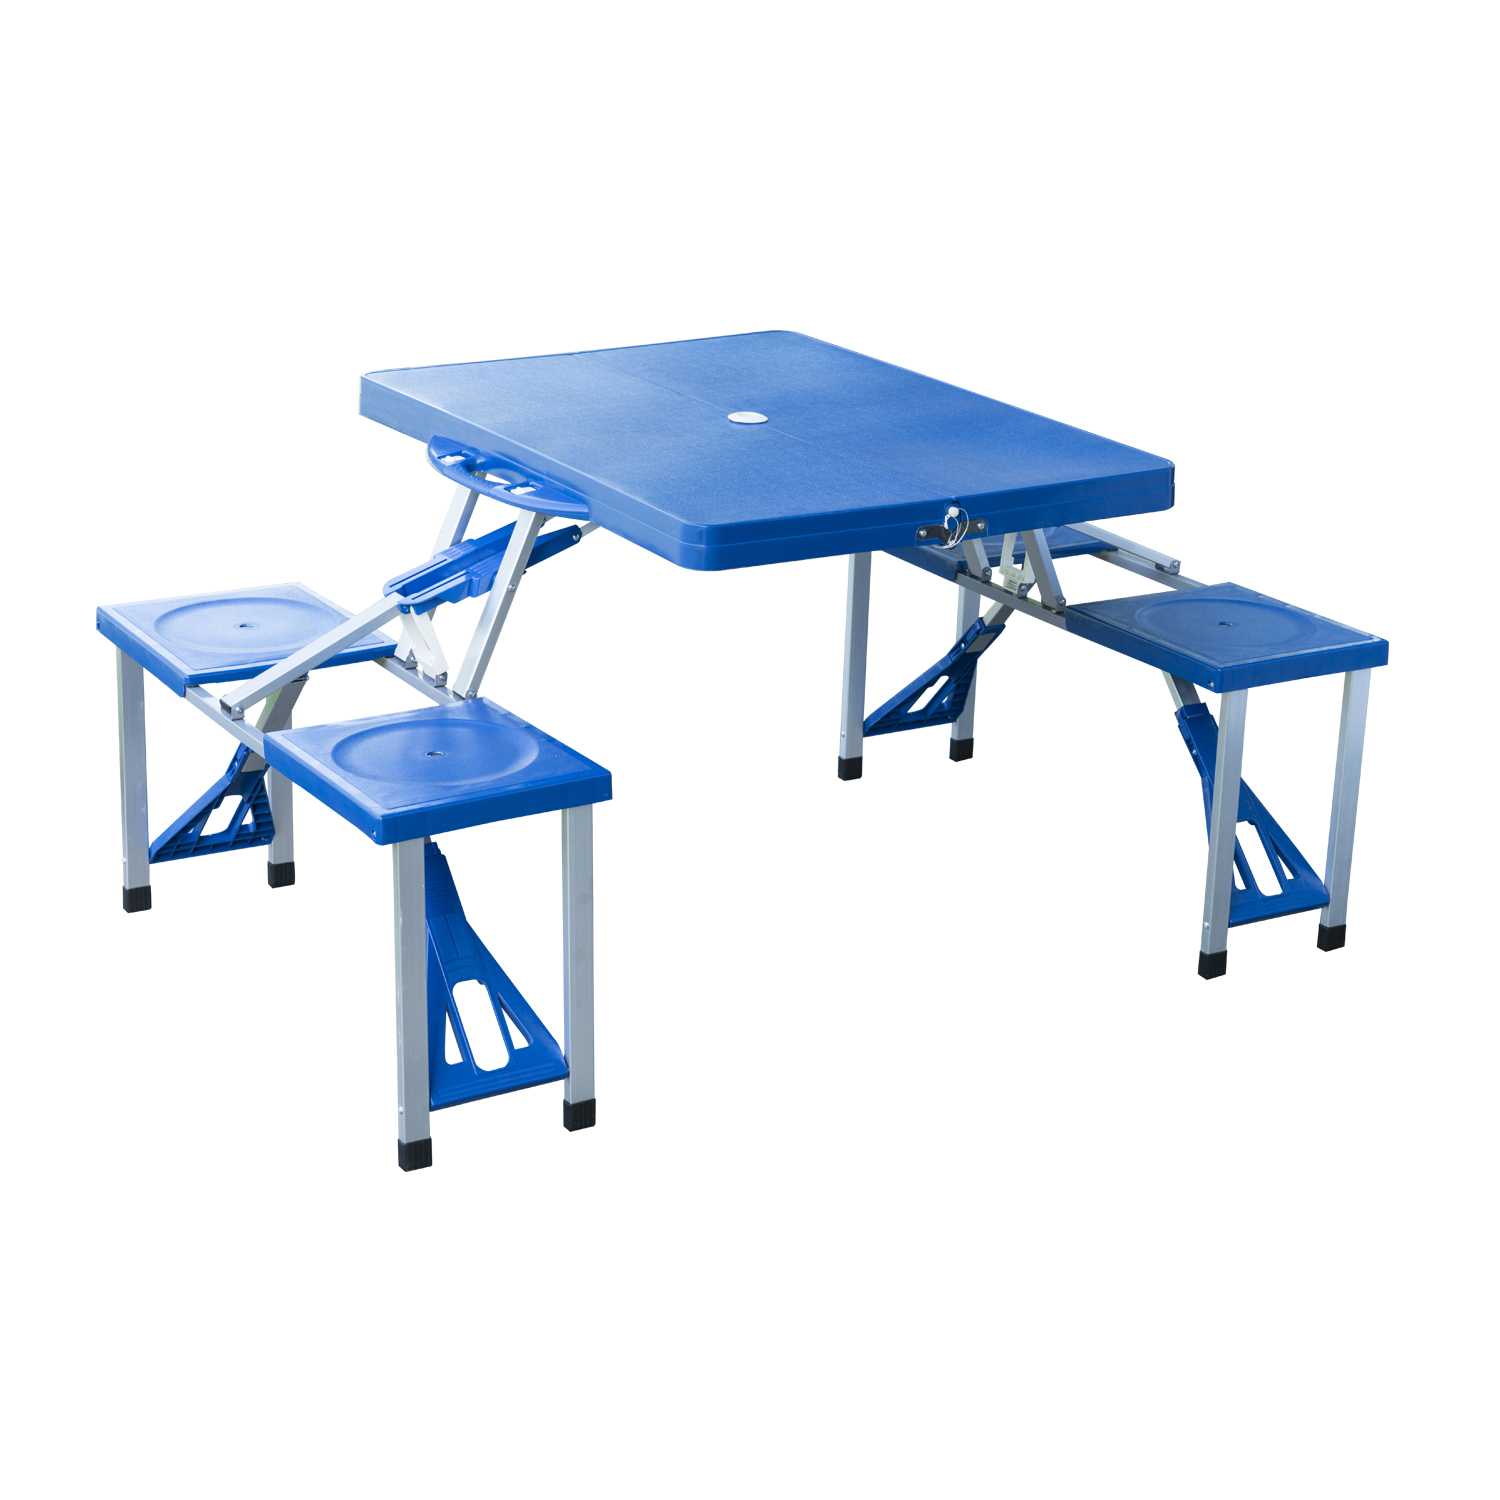 outsunny outdoor portable suitcase folding picnic table w/ 4 seats - blue AFIOSWT